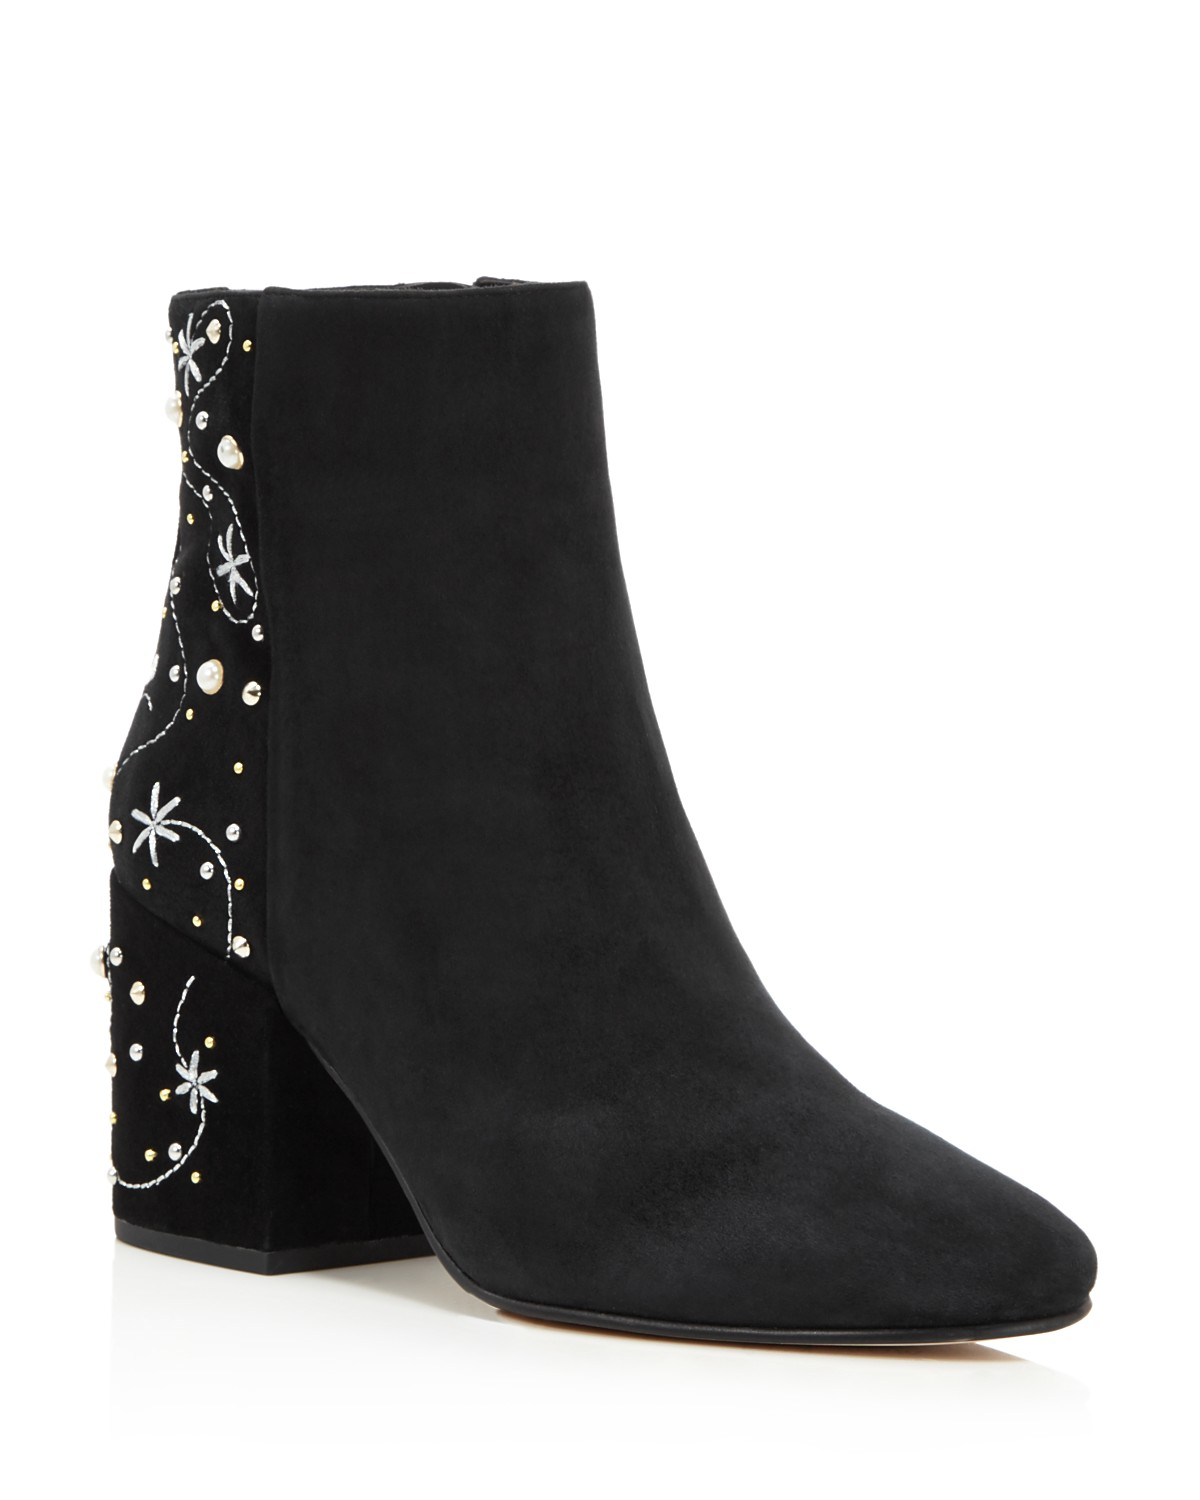 Sam Edelman Taft Embroidered Pearl Stud Booties - 100% Exclusive wCaN24